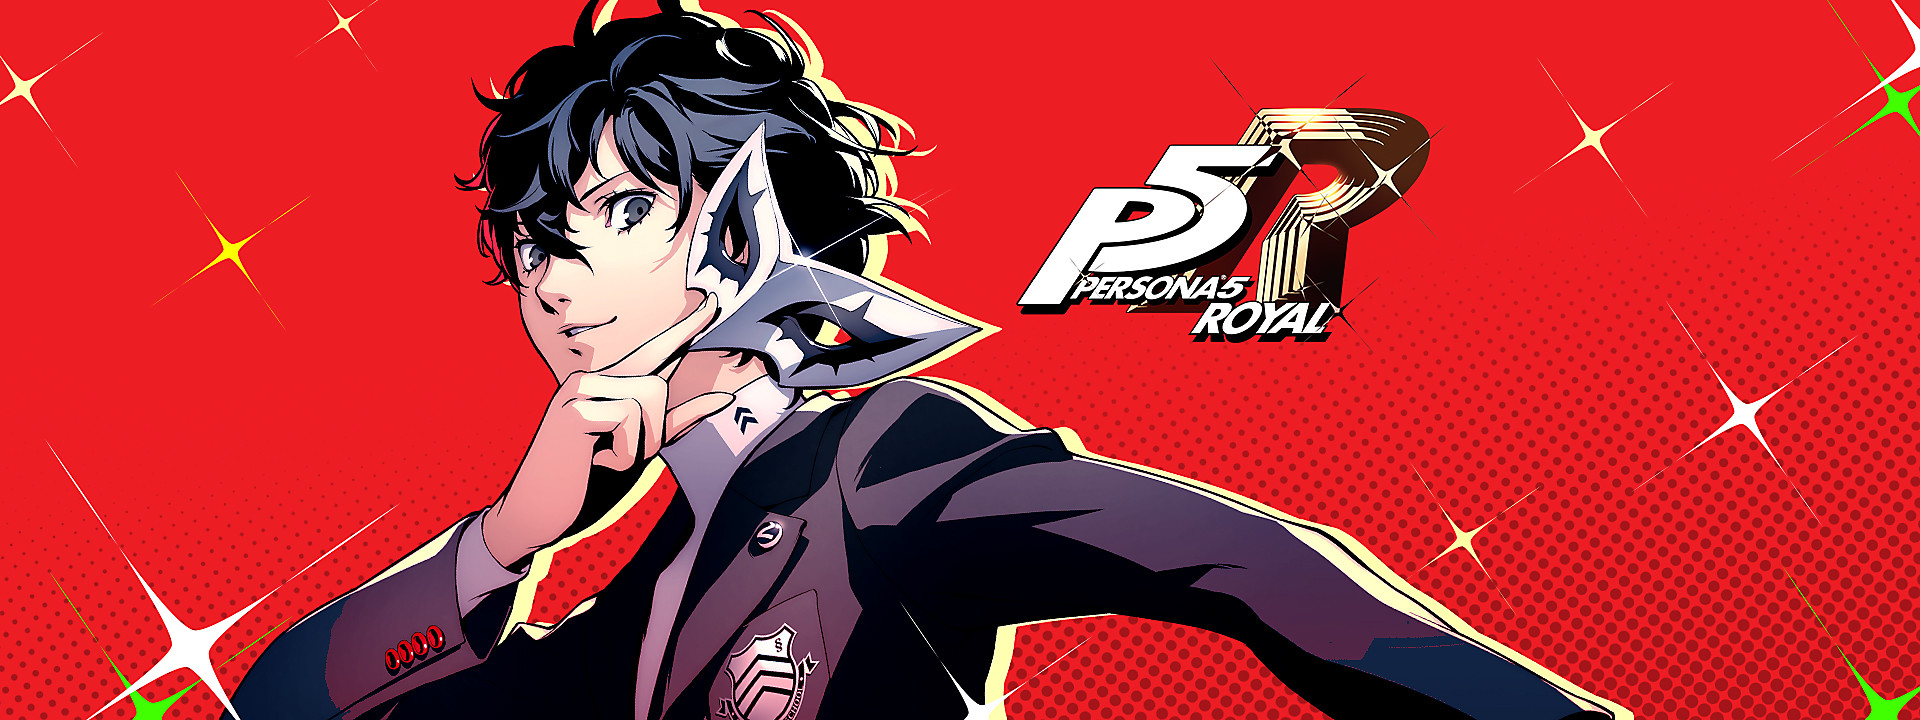 Persona 5 Royal Game Ps4 Playstation